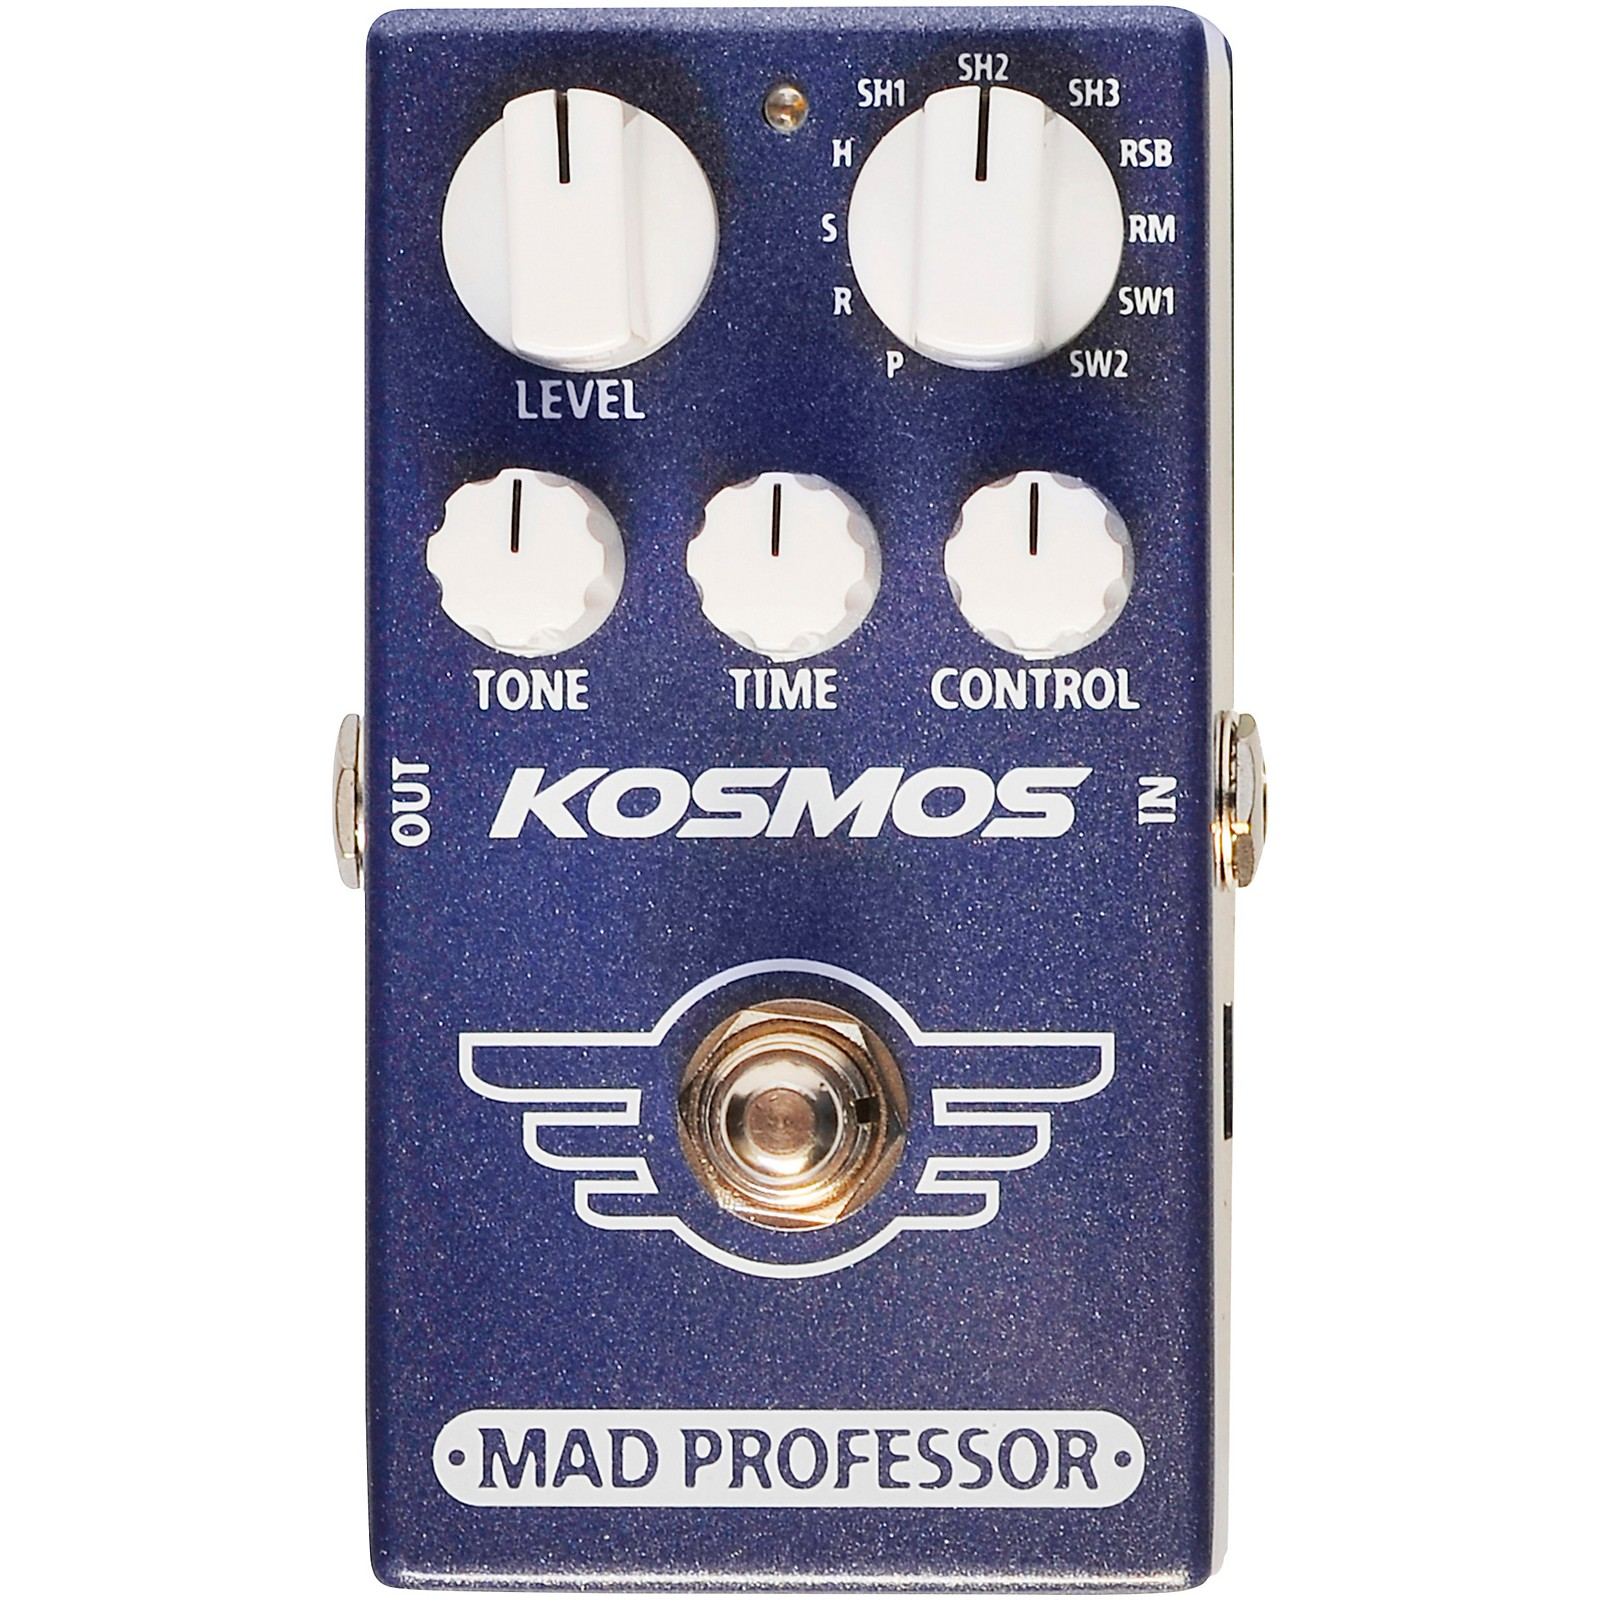 Mad Professor Kosmos Reverb Effects Pedal